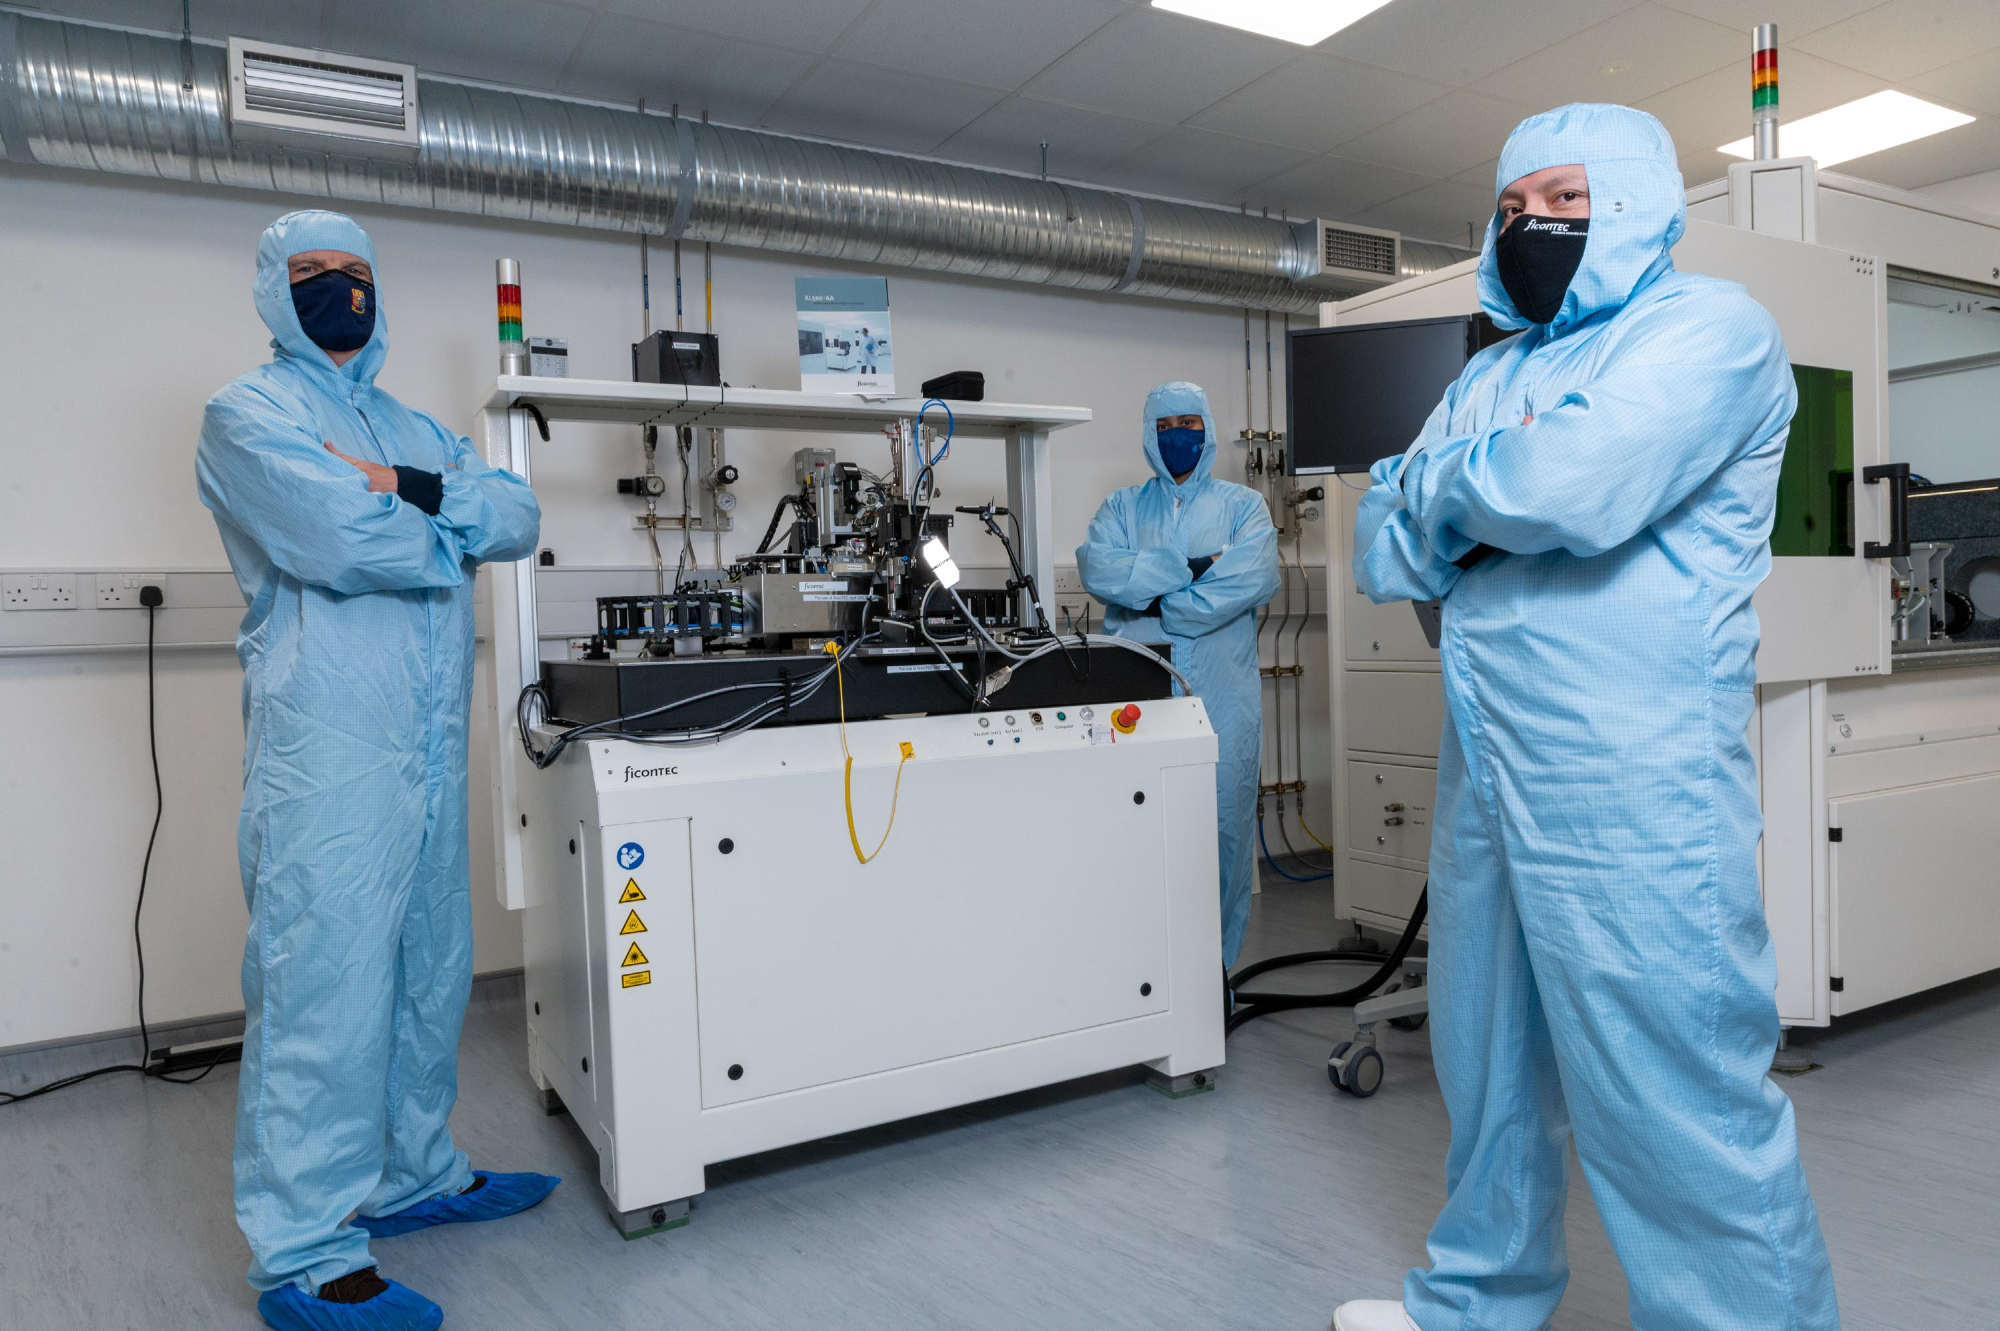 PhotonicLEAP Awarded Over €5m in European Funding to Develop Disruptive Low-Cost Photonic Packaging and Test Technologies